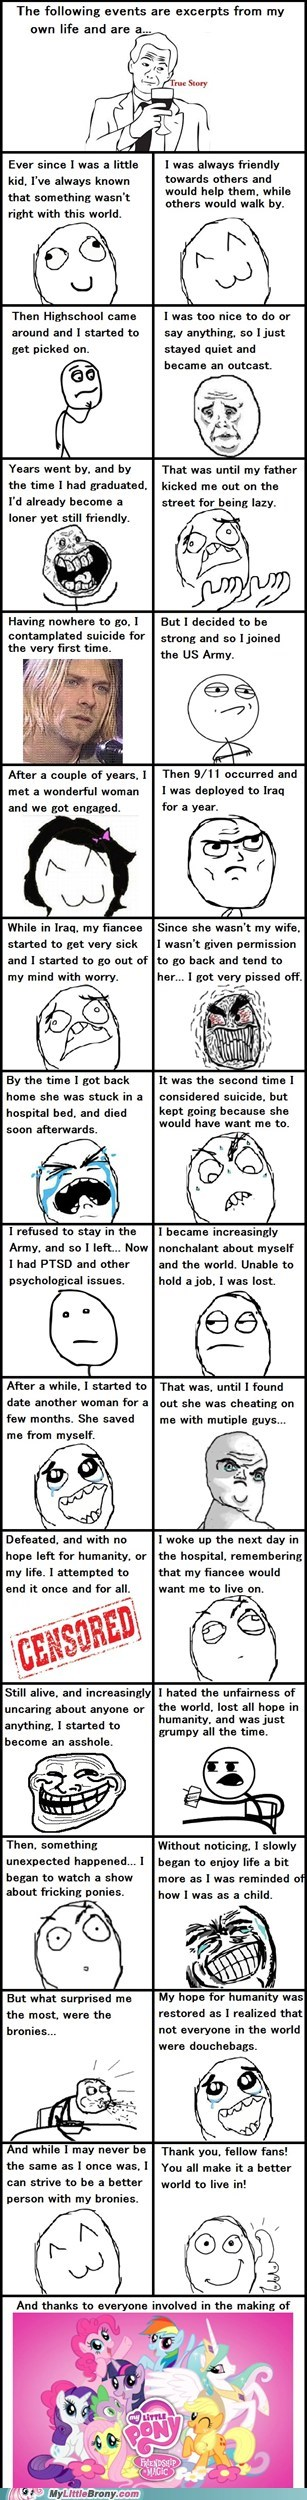 best of week everypony rage comic Rage Comics thank you true story - 5605352192